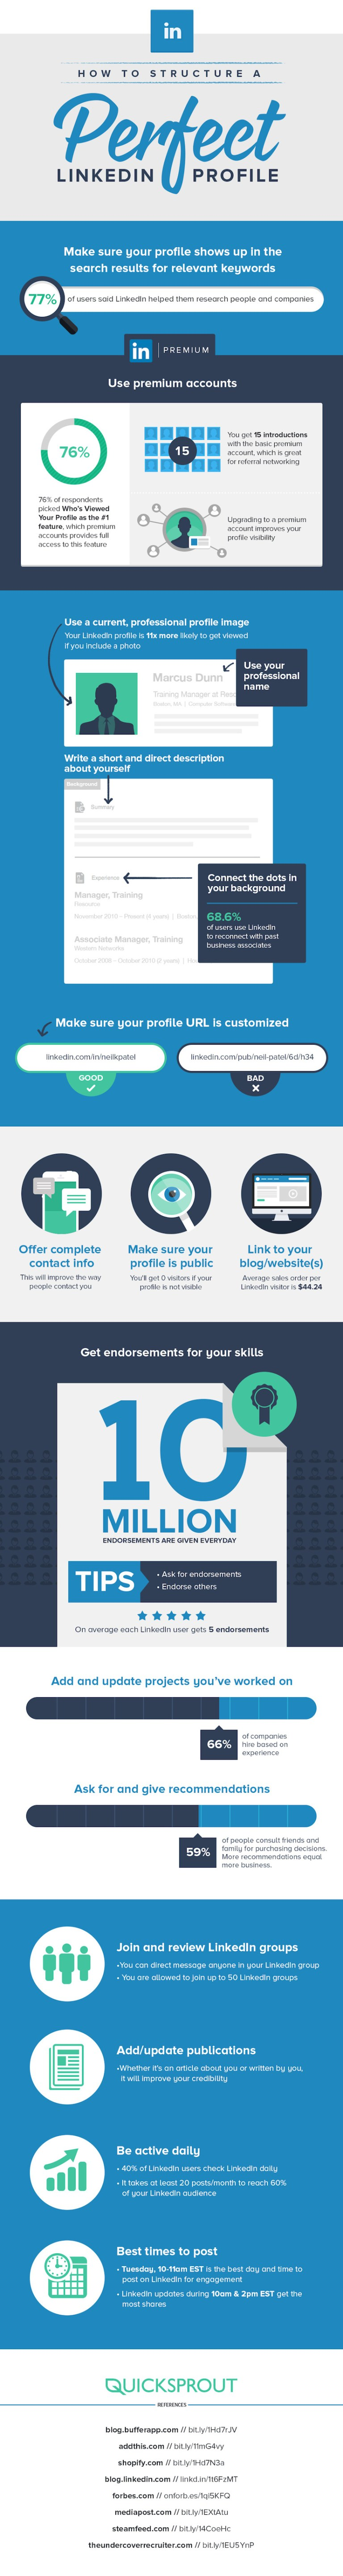 Linkedin_Infographic_Neil_Patel_QuickSprout